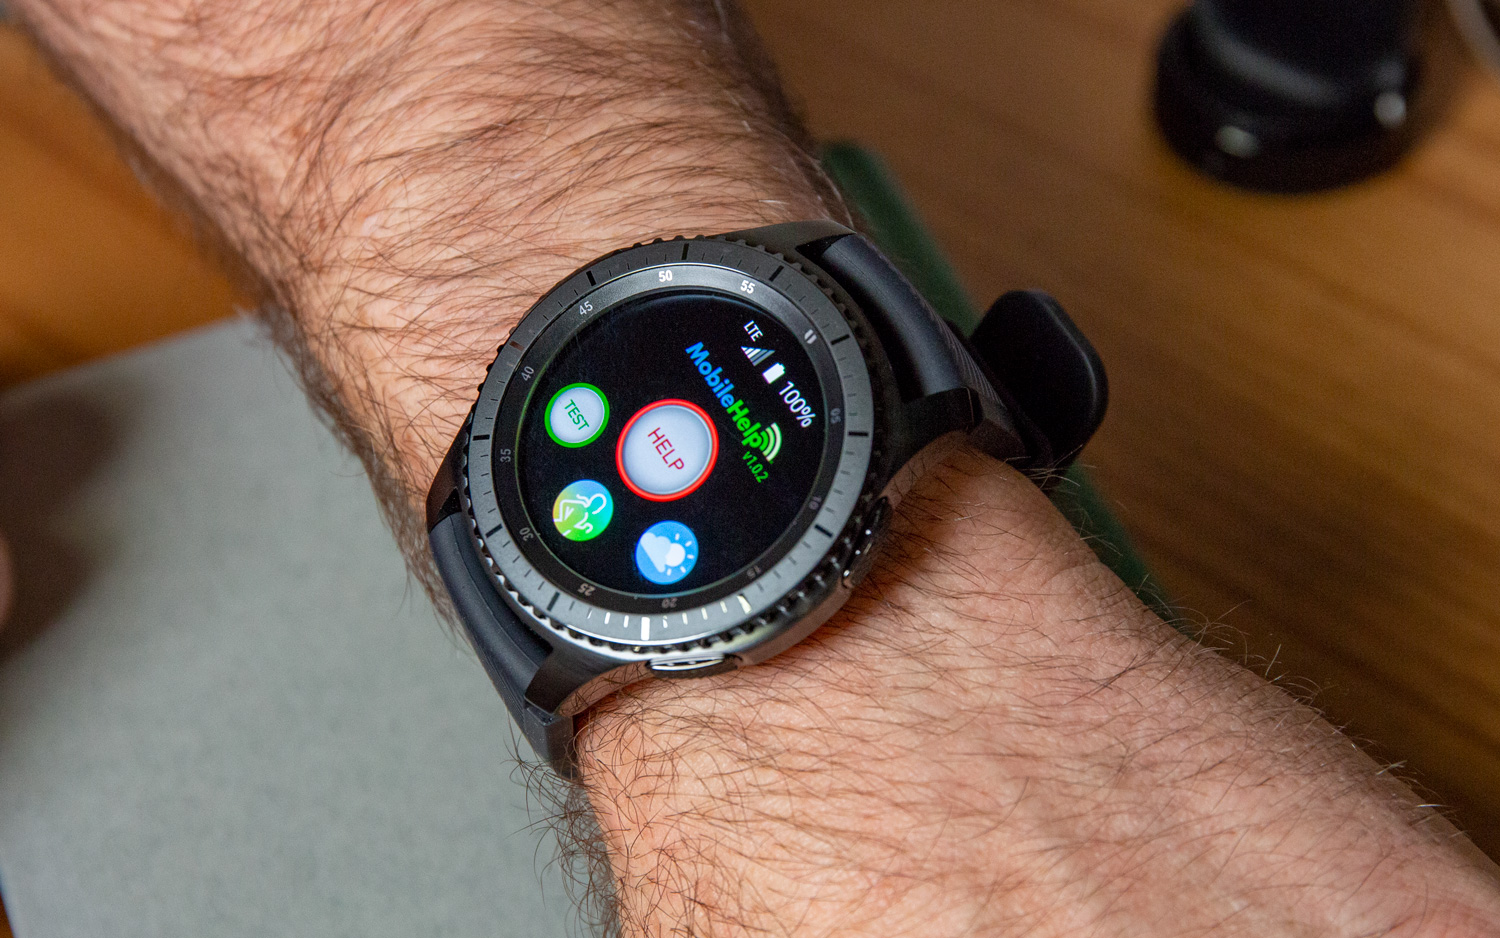 Best Medical Alert Smartwatches of 2019 - Reviews of the